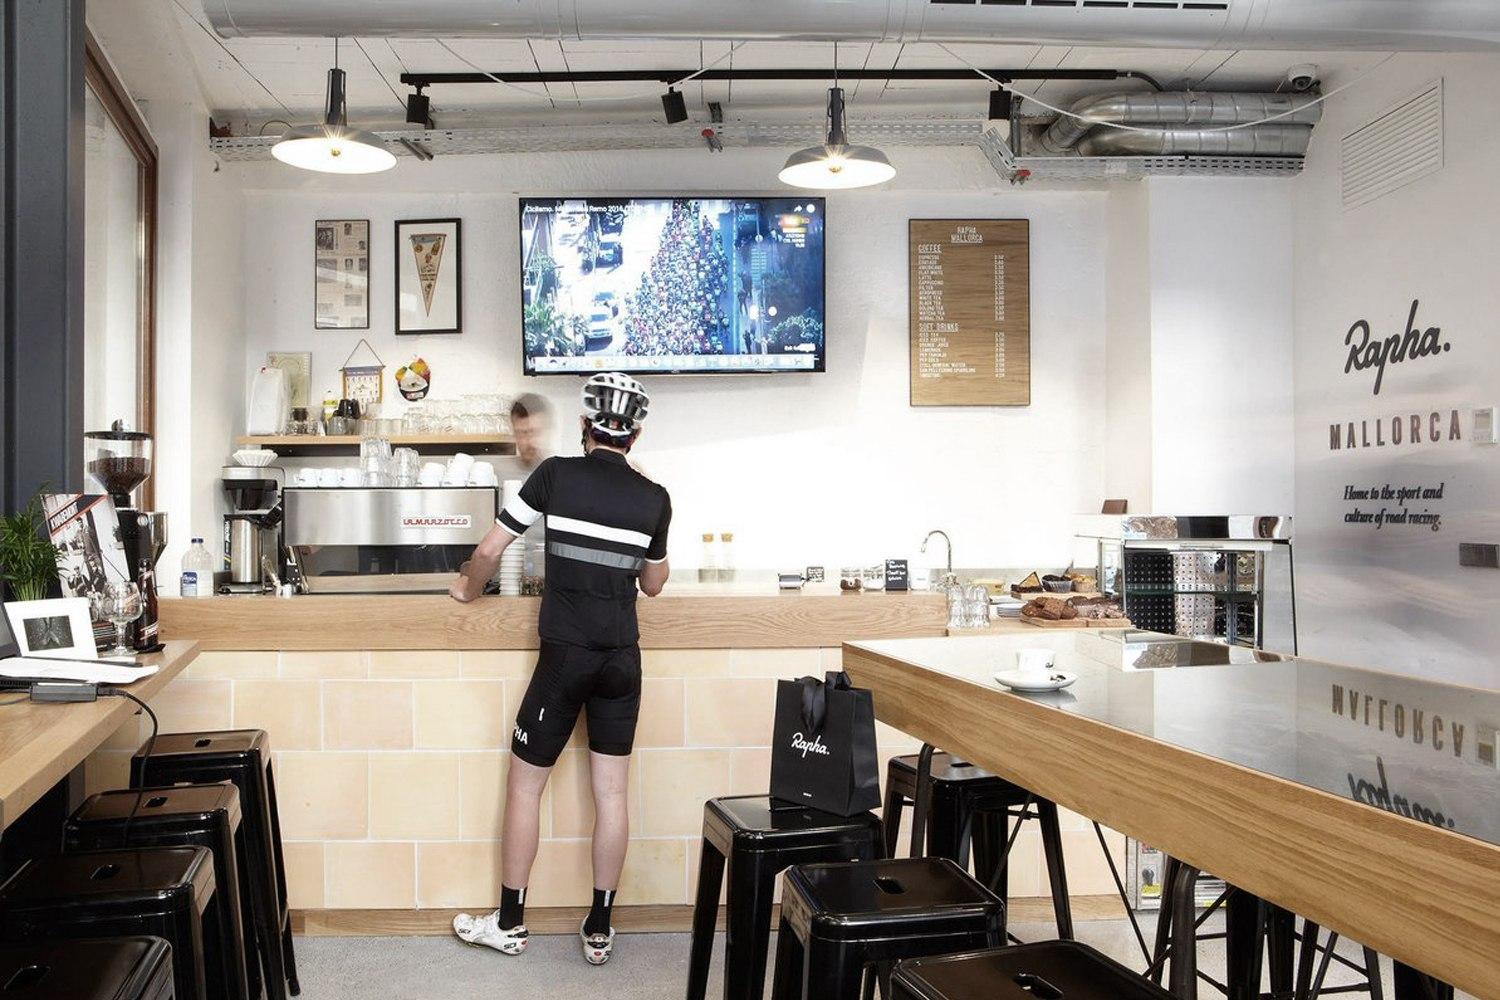 Rapha clubhouse, cased inside a wooden table is a topographical map centrepiece showing cycling routes in Mallorca made of extruded Valchromat steps.